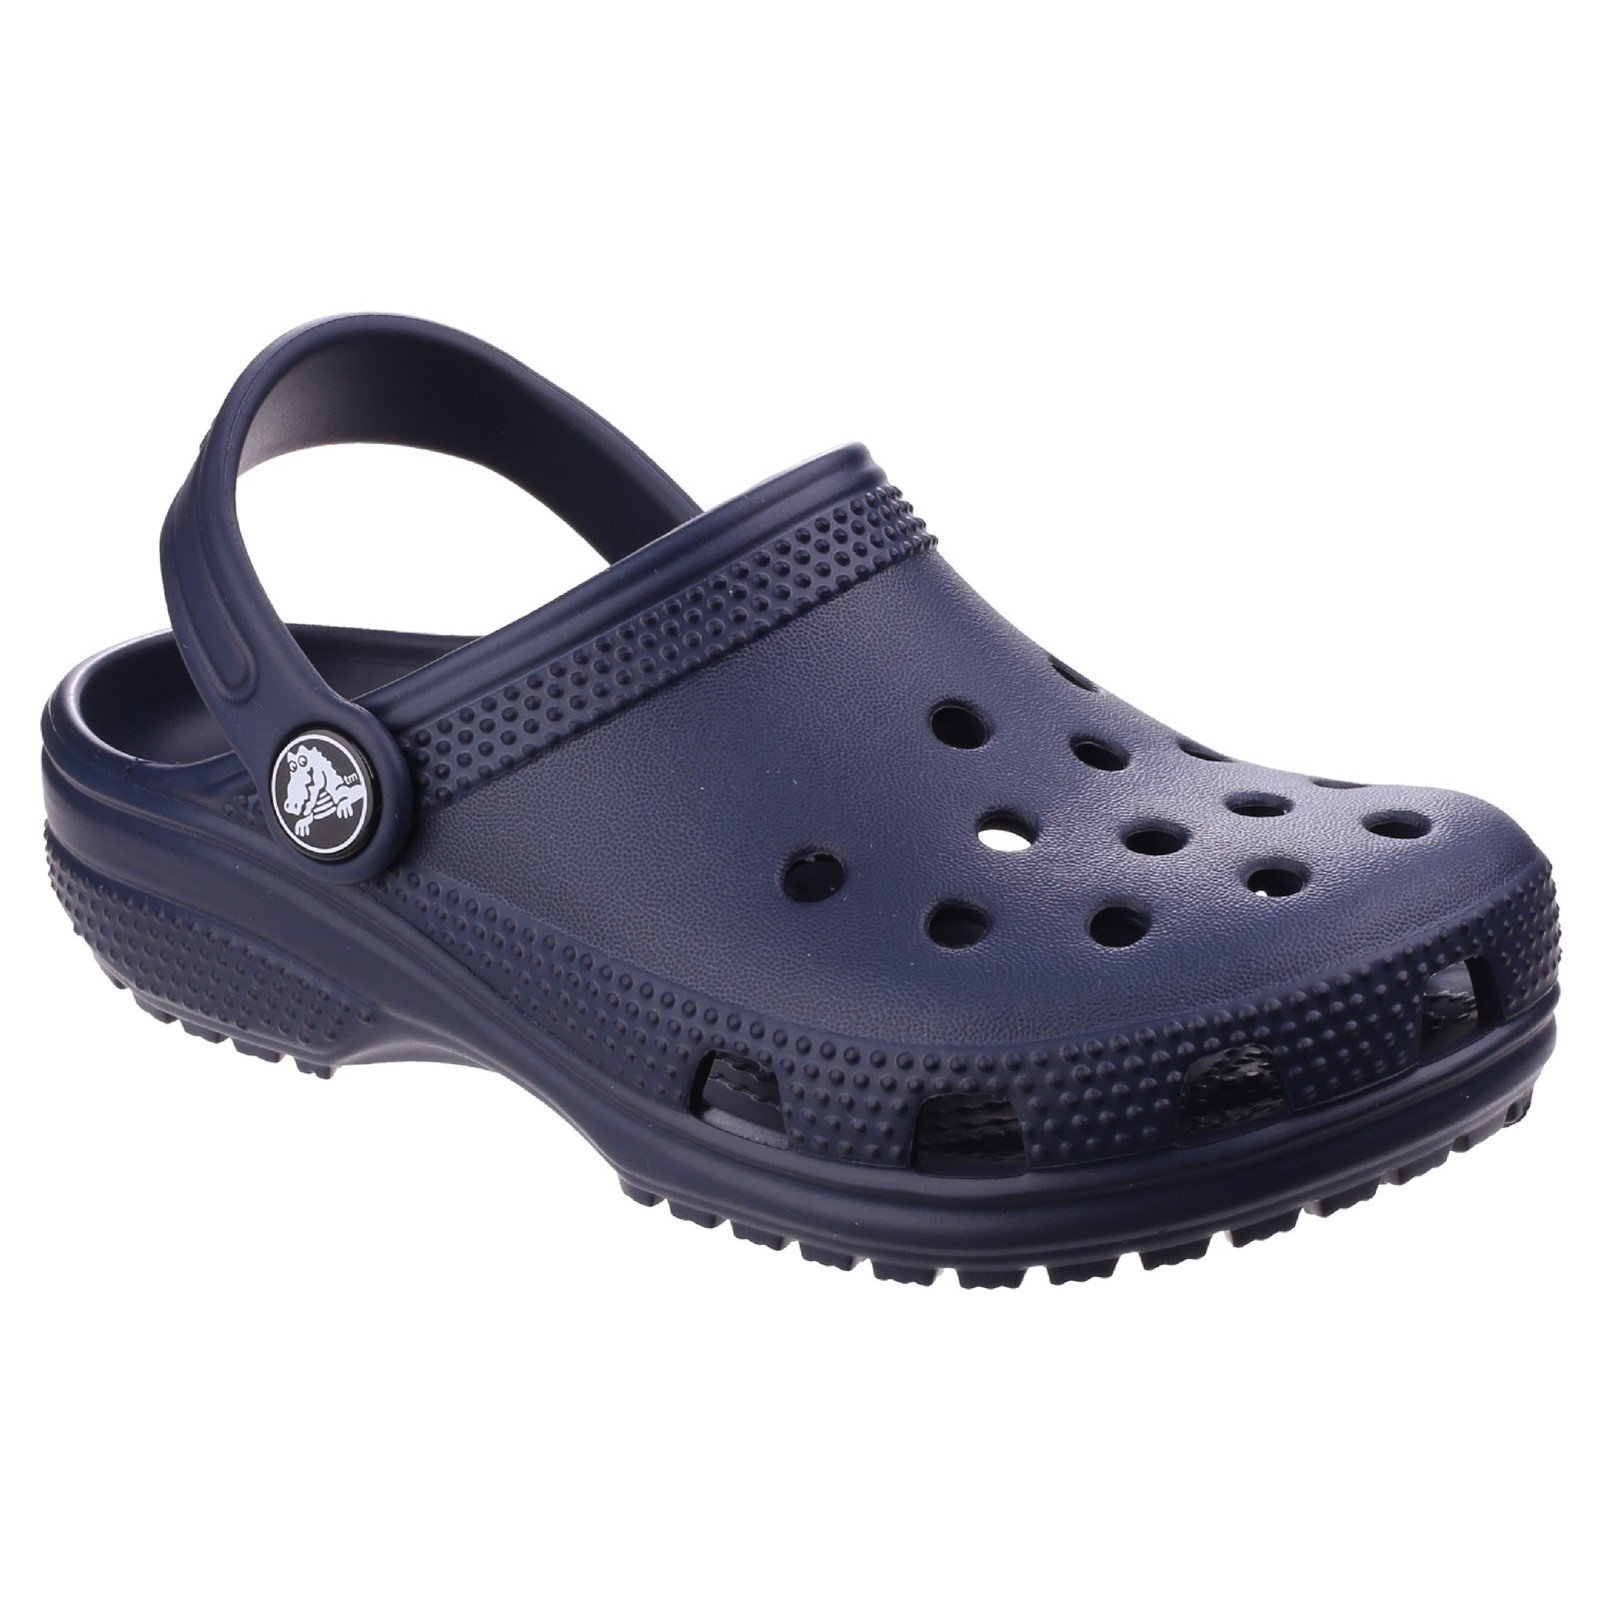 Crocs Unisex Childrens/Kids Classic Clogs (2 US) (Navy)